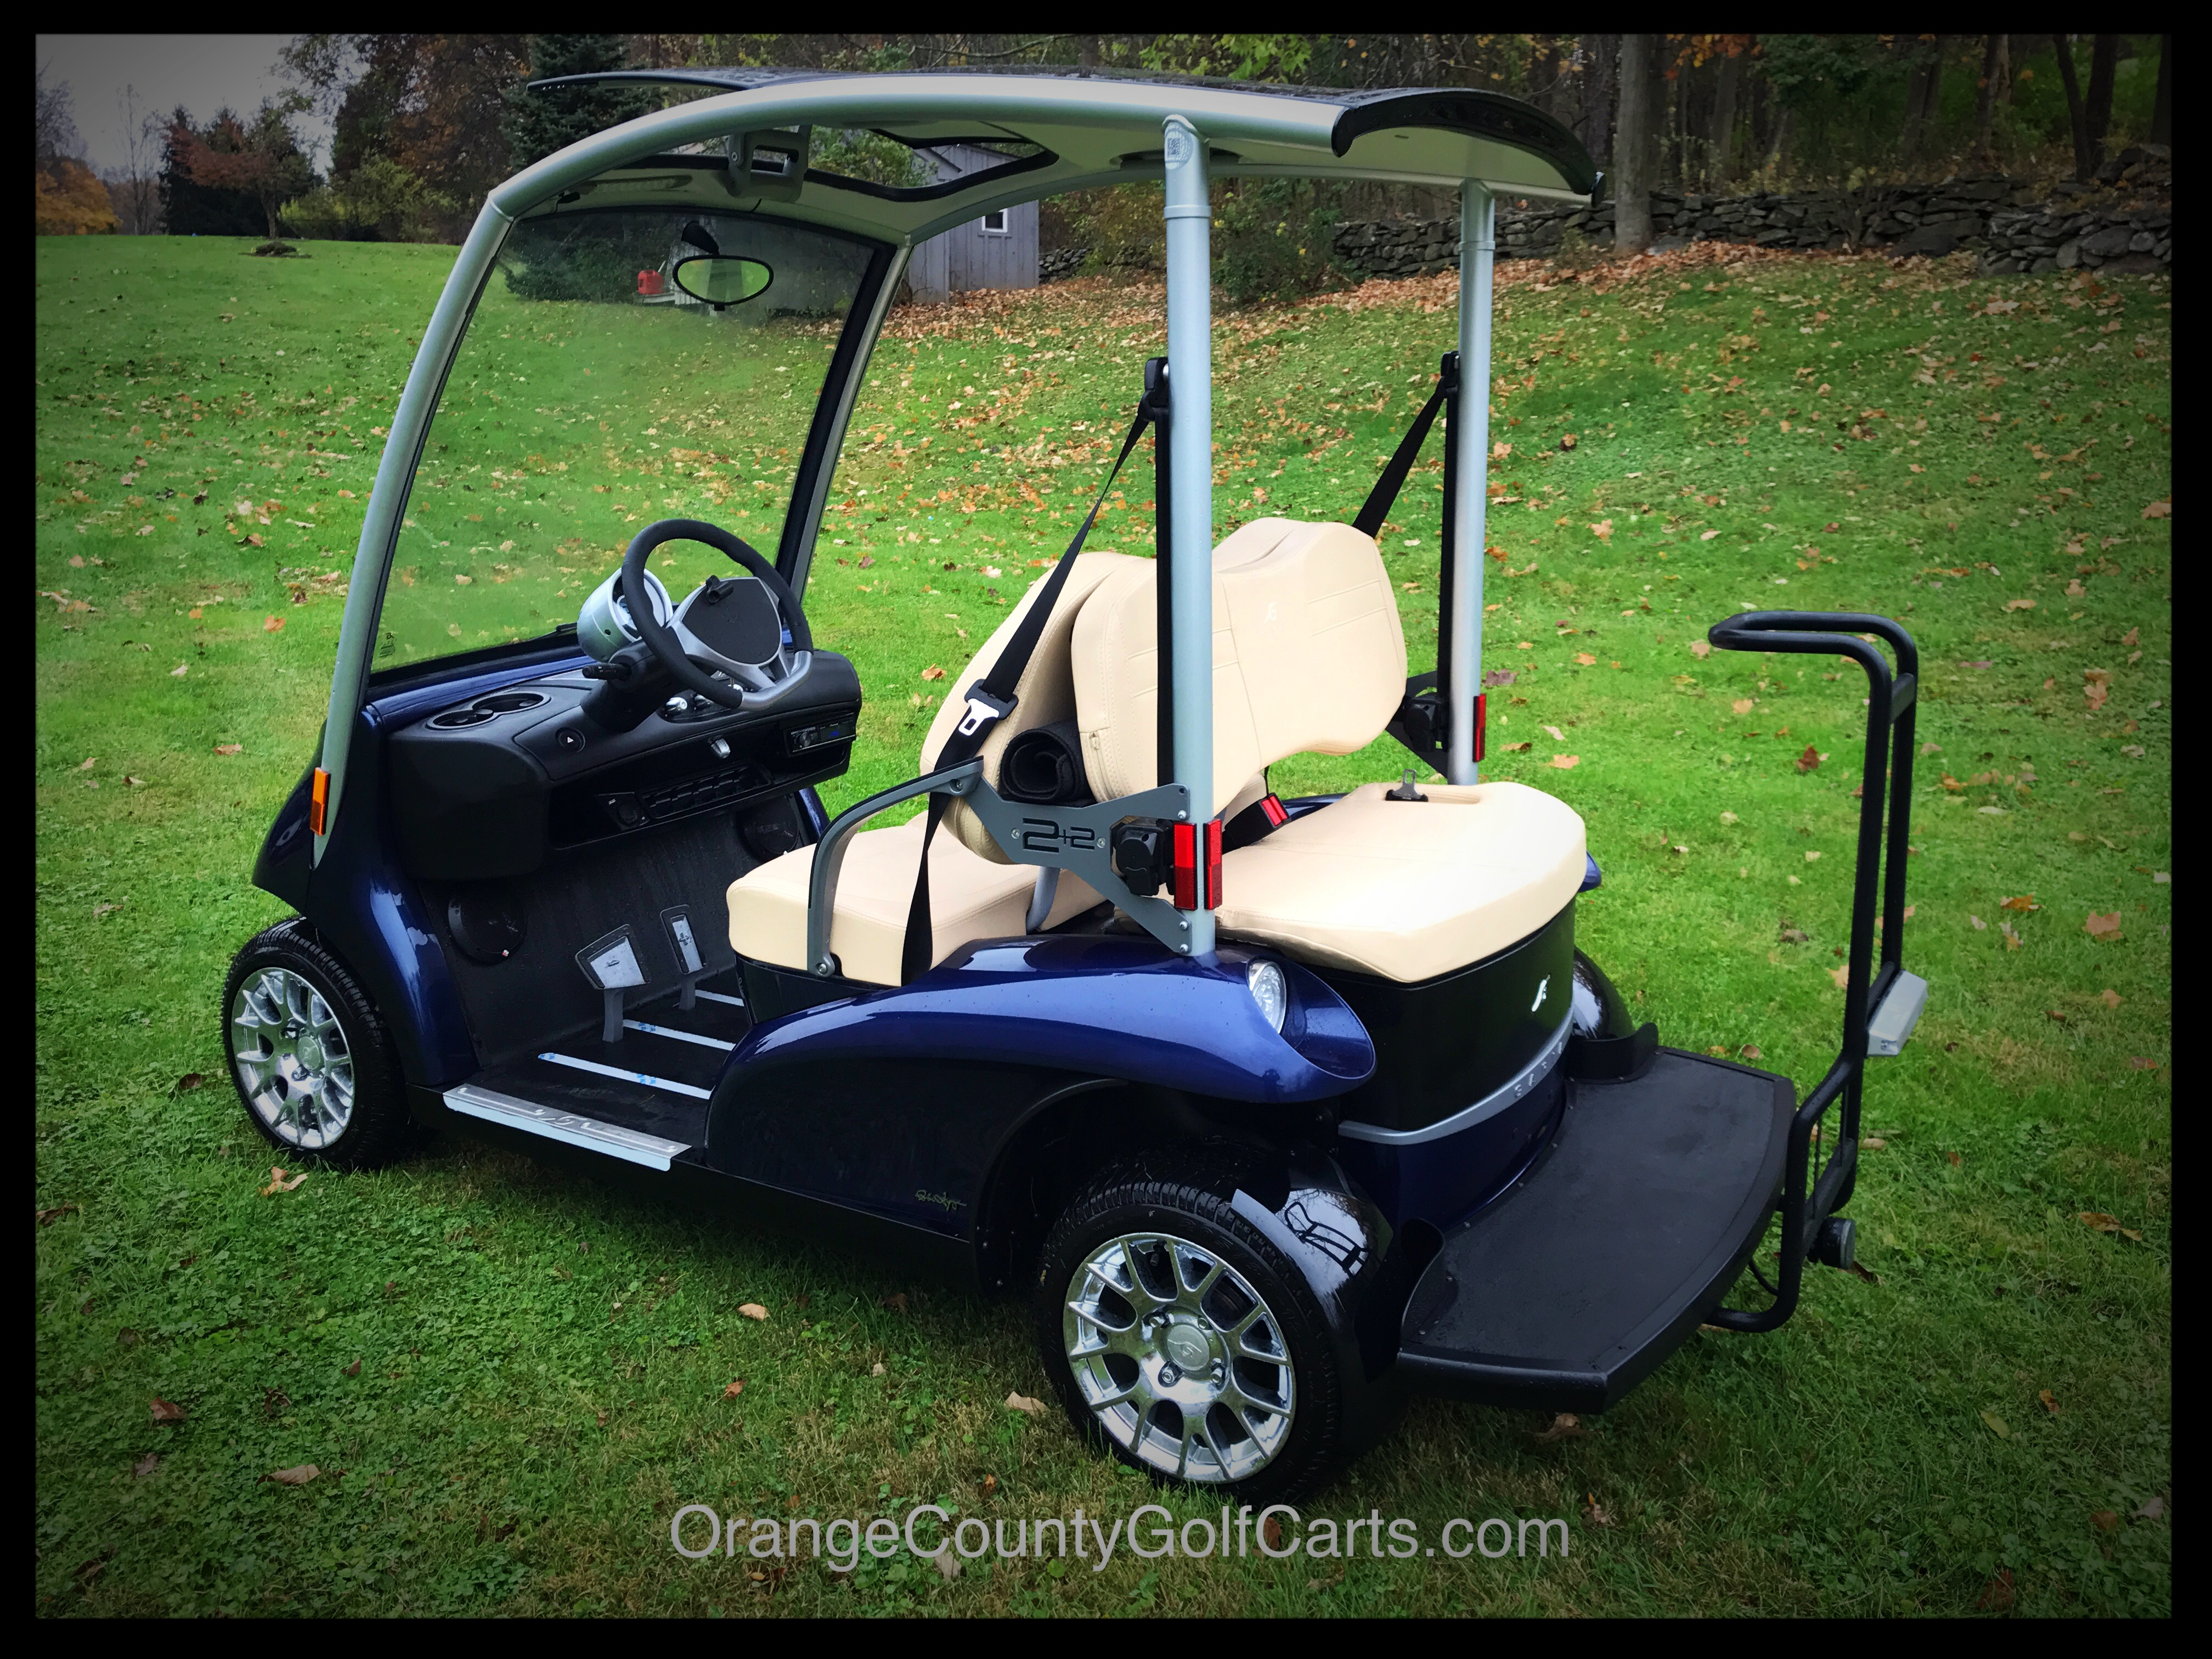 Orange County Golf Carts New York Luxury Golf Cars on